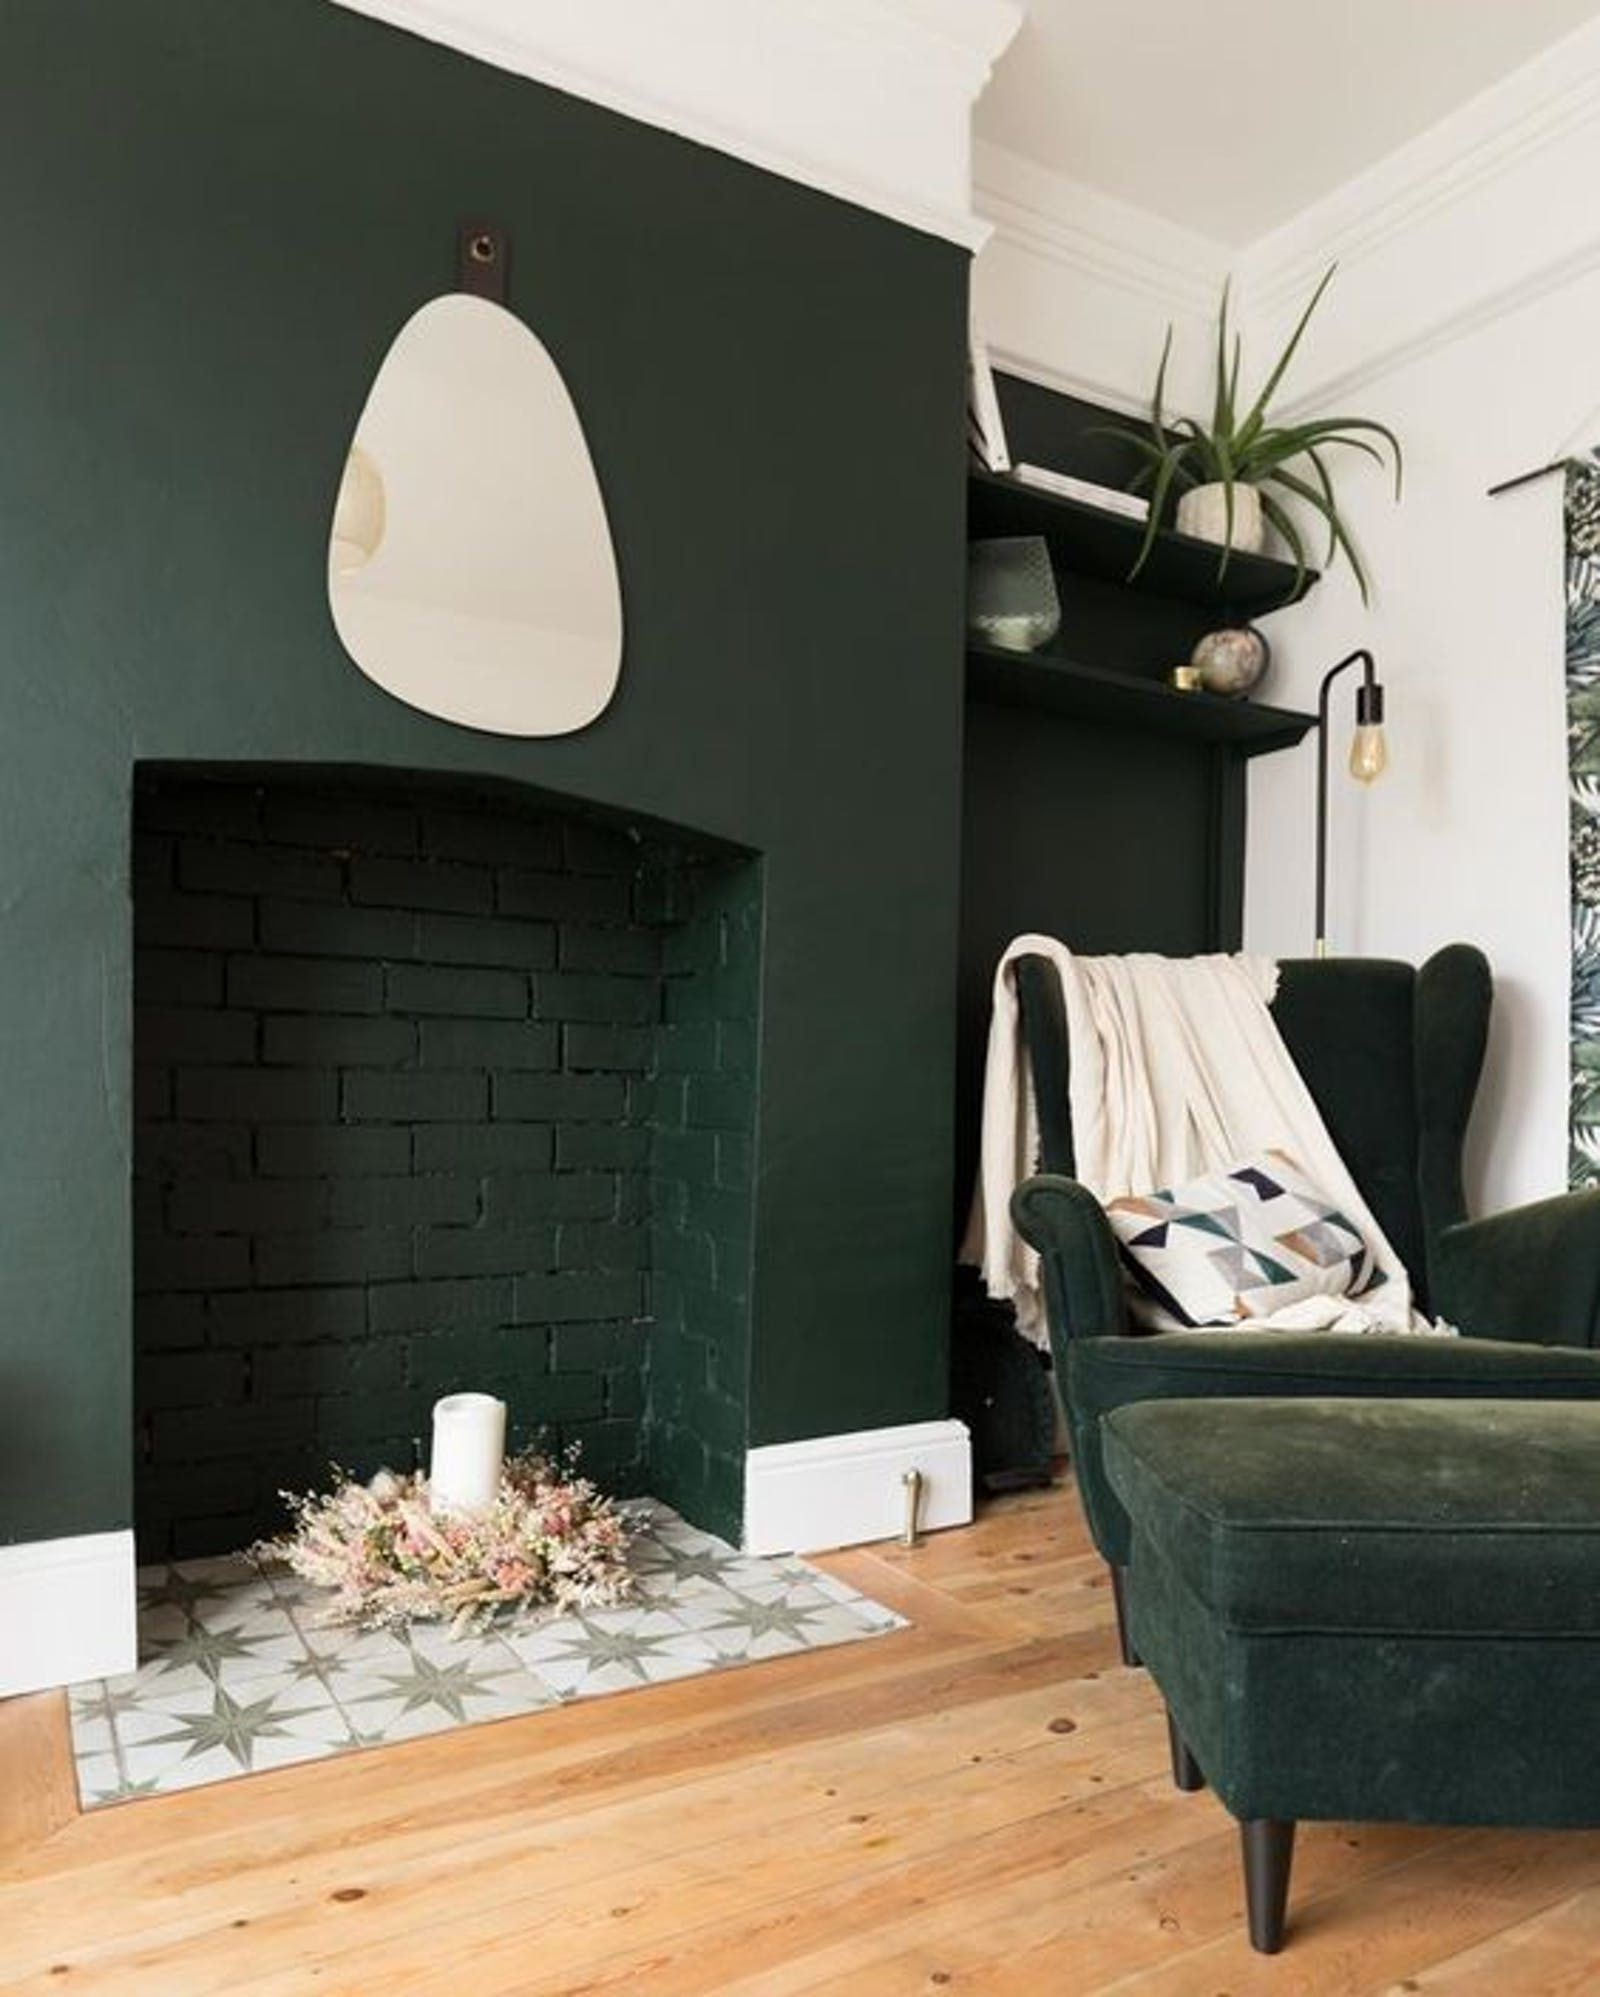 Living room painted in Lick Green 06, a dark green paired with light wooden parquet floors